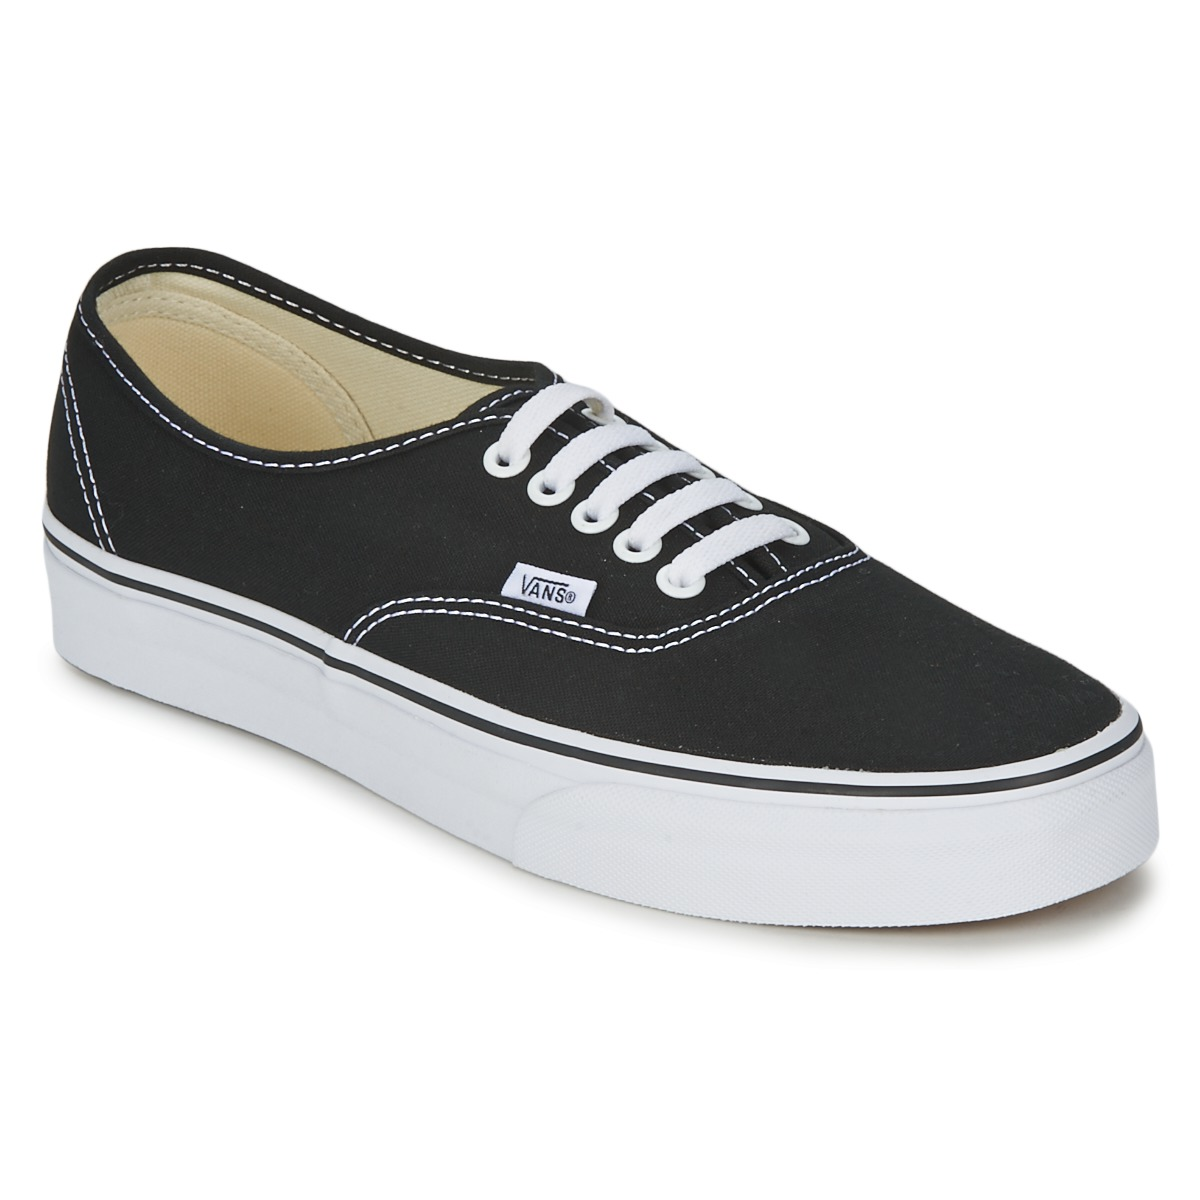 how about vans(shoes)!